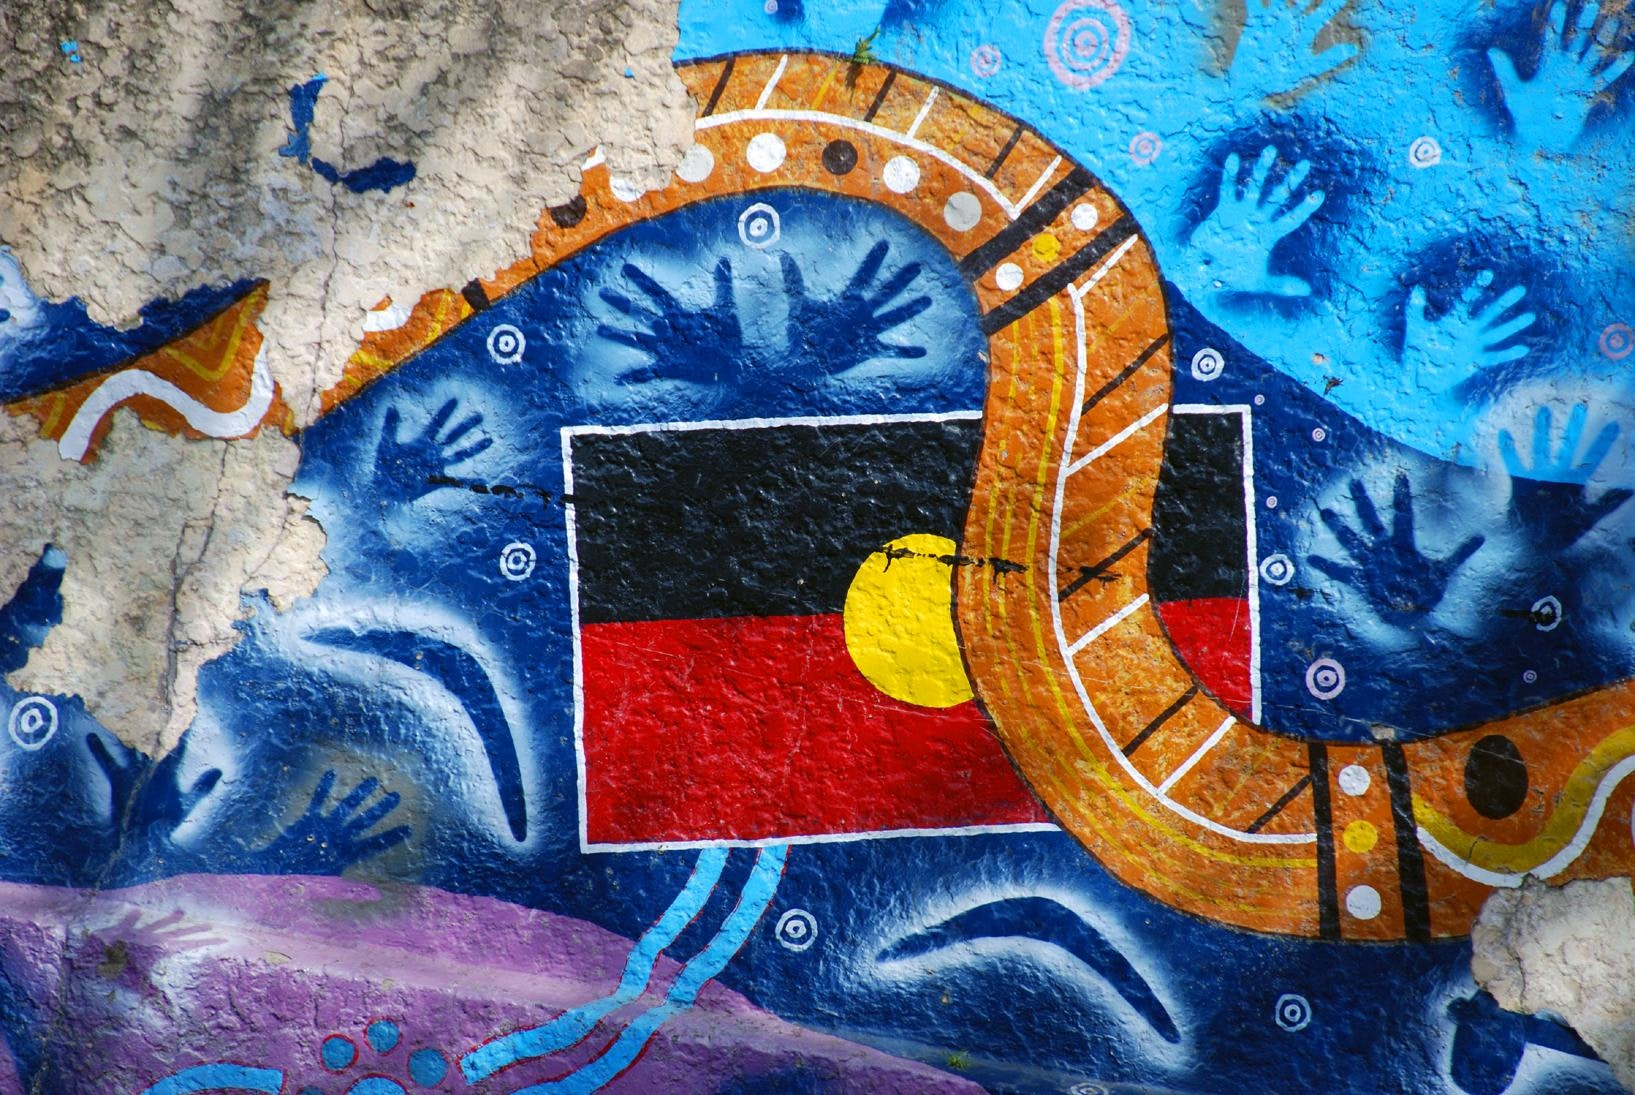 australian aboriginal technology essay Australia essays australia is a continent and it is also a country of its own australia is located between the south pacific and indian oceans now, technological advances are breathing new life into our use of wind power as a clean, renewable, cost-effective means of generating electricity.